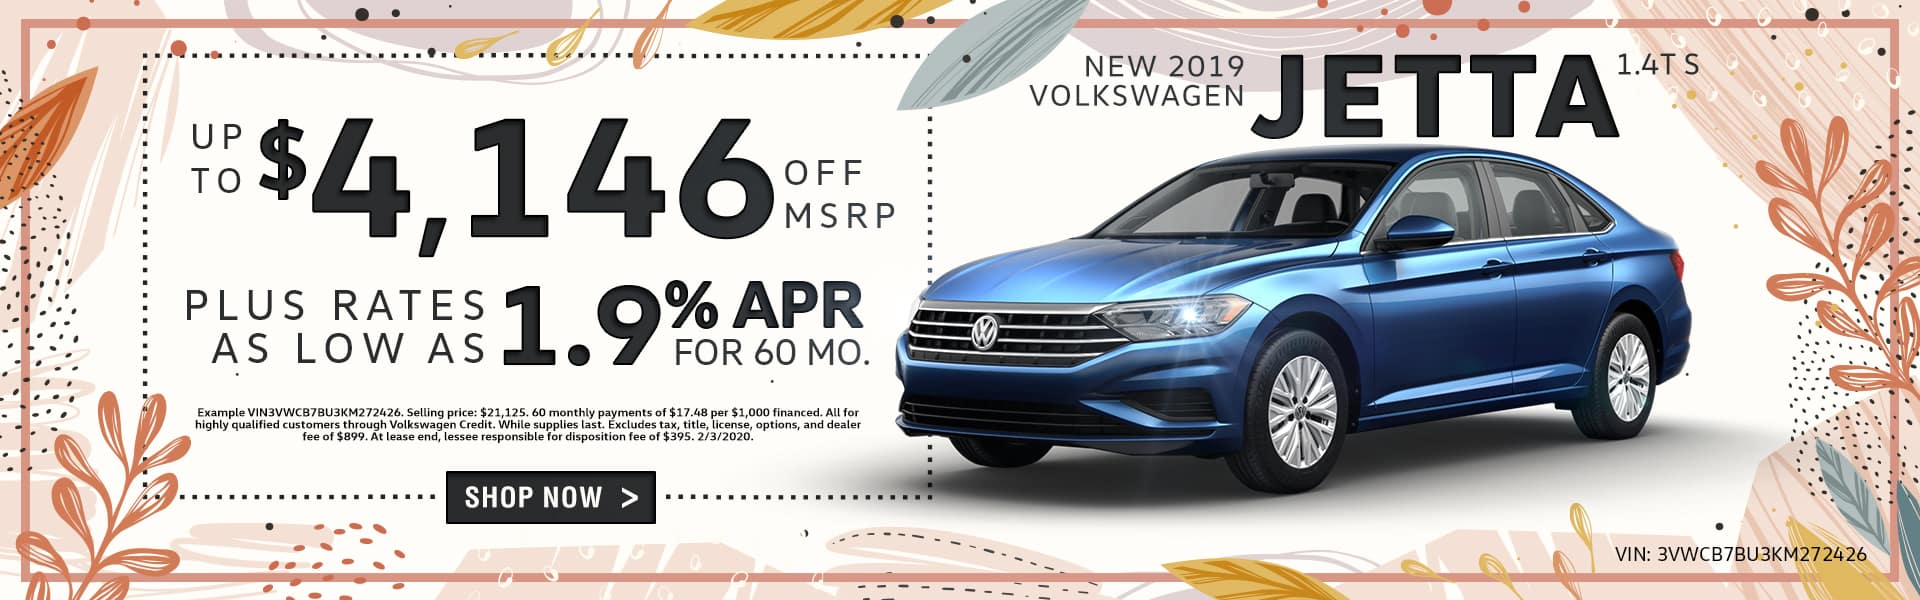 New 2019 Volkswagen Jetta 1.4T S | Up To $4,146 Off MSRP Plus Rates As Low As 1.9% APR For 60 Months